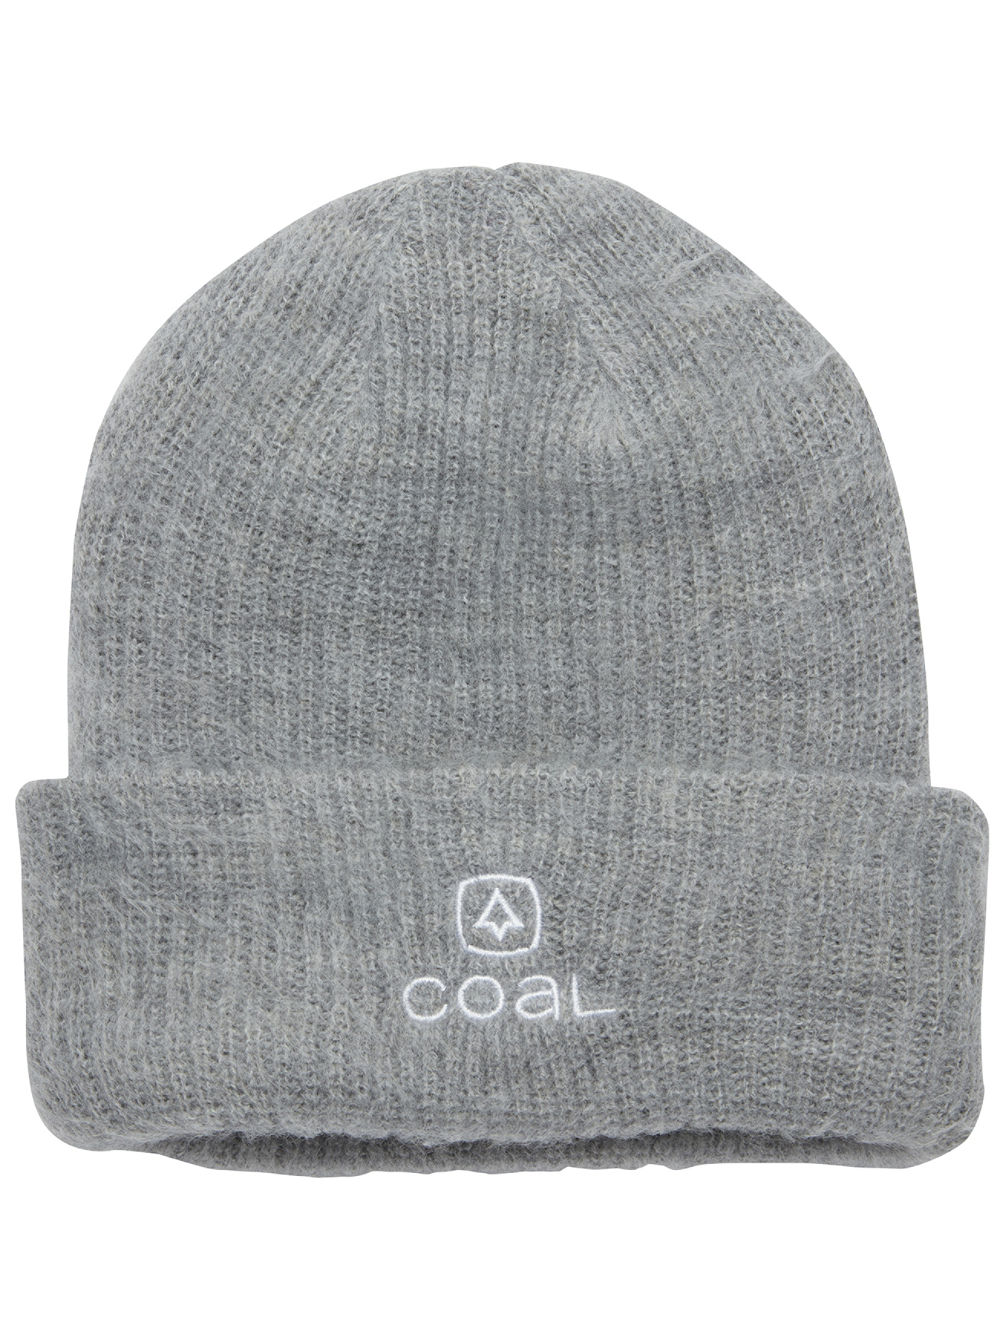 The Morgan Beanie